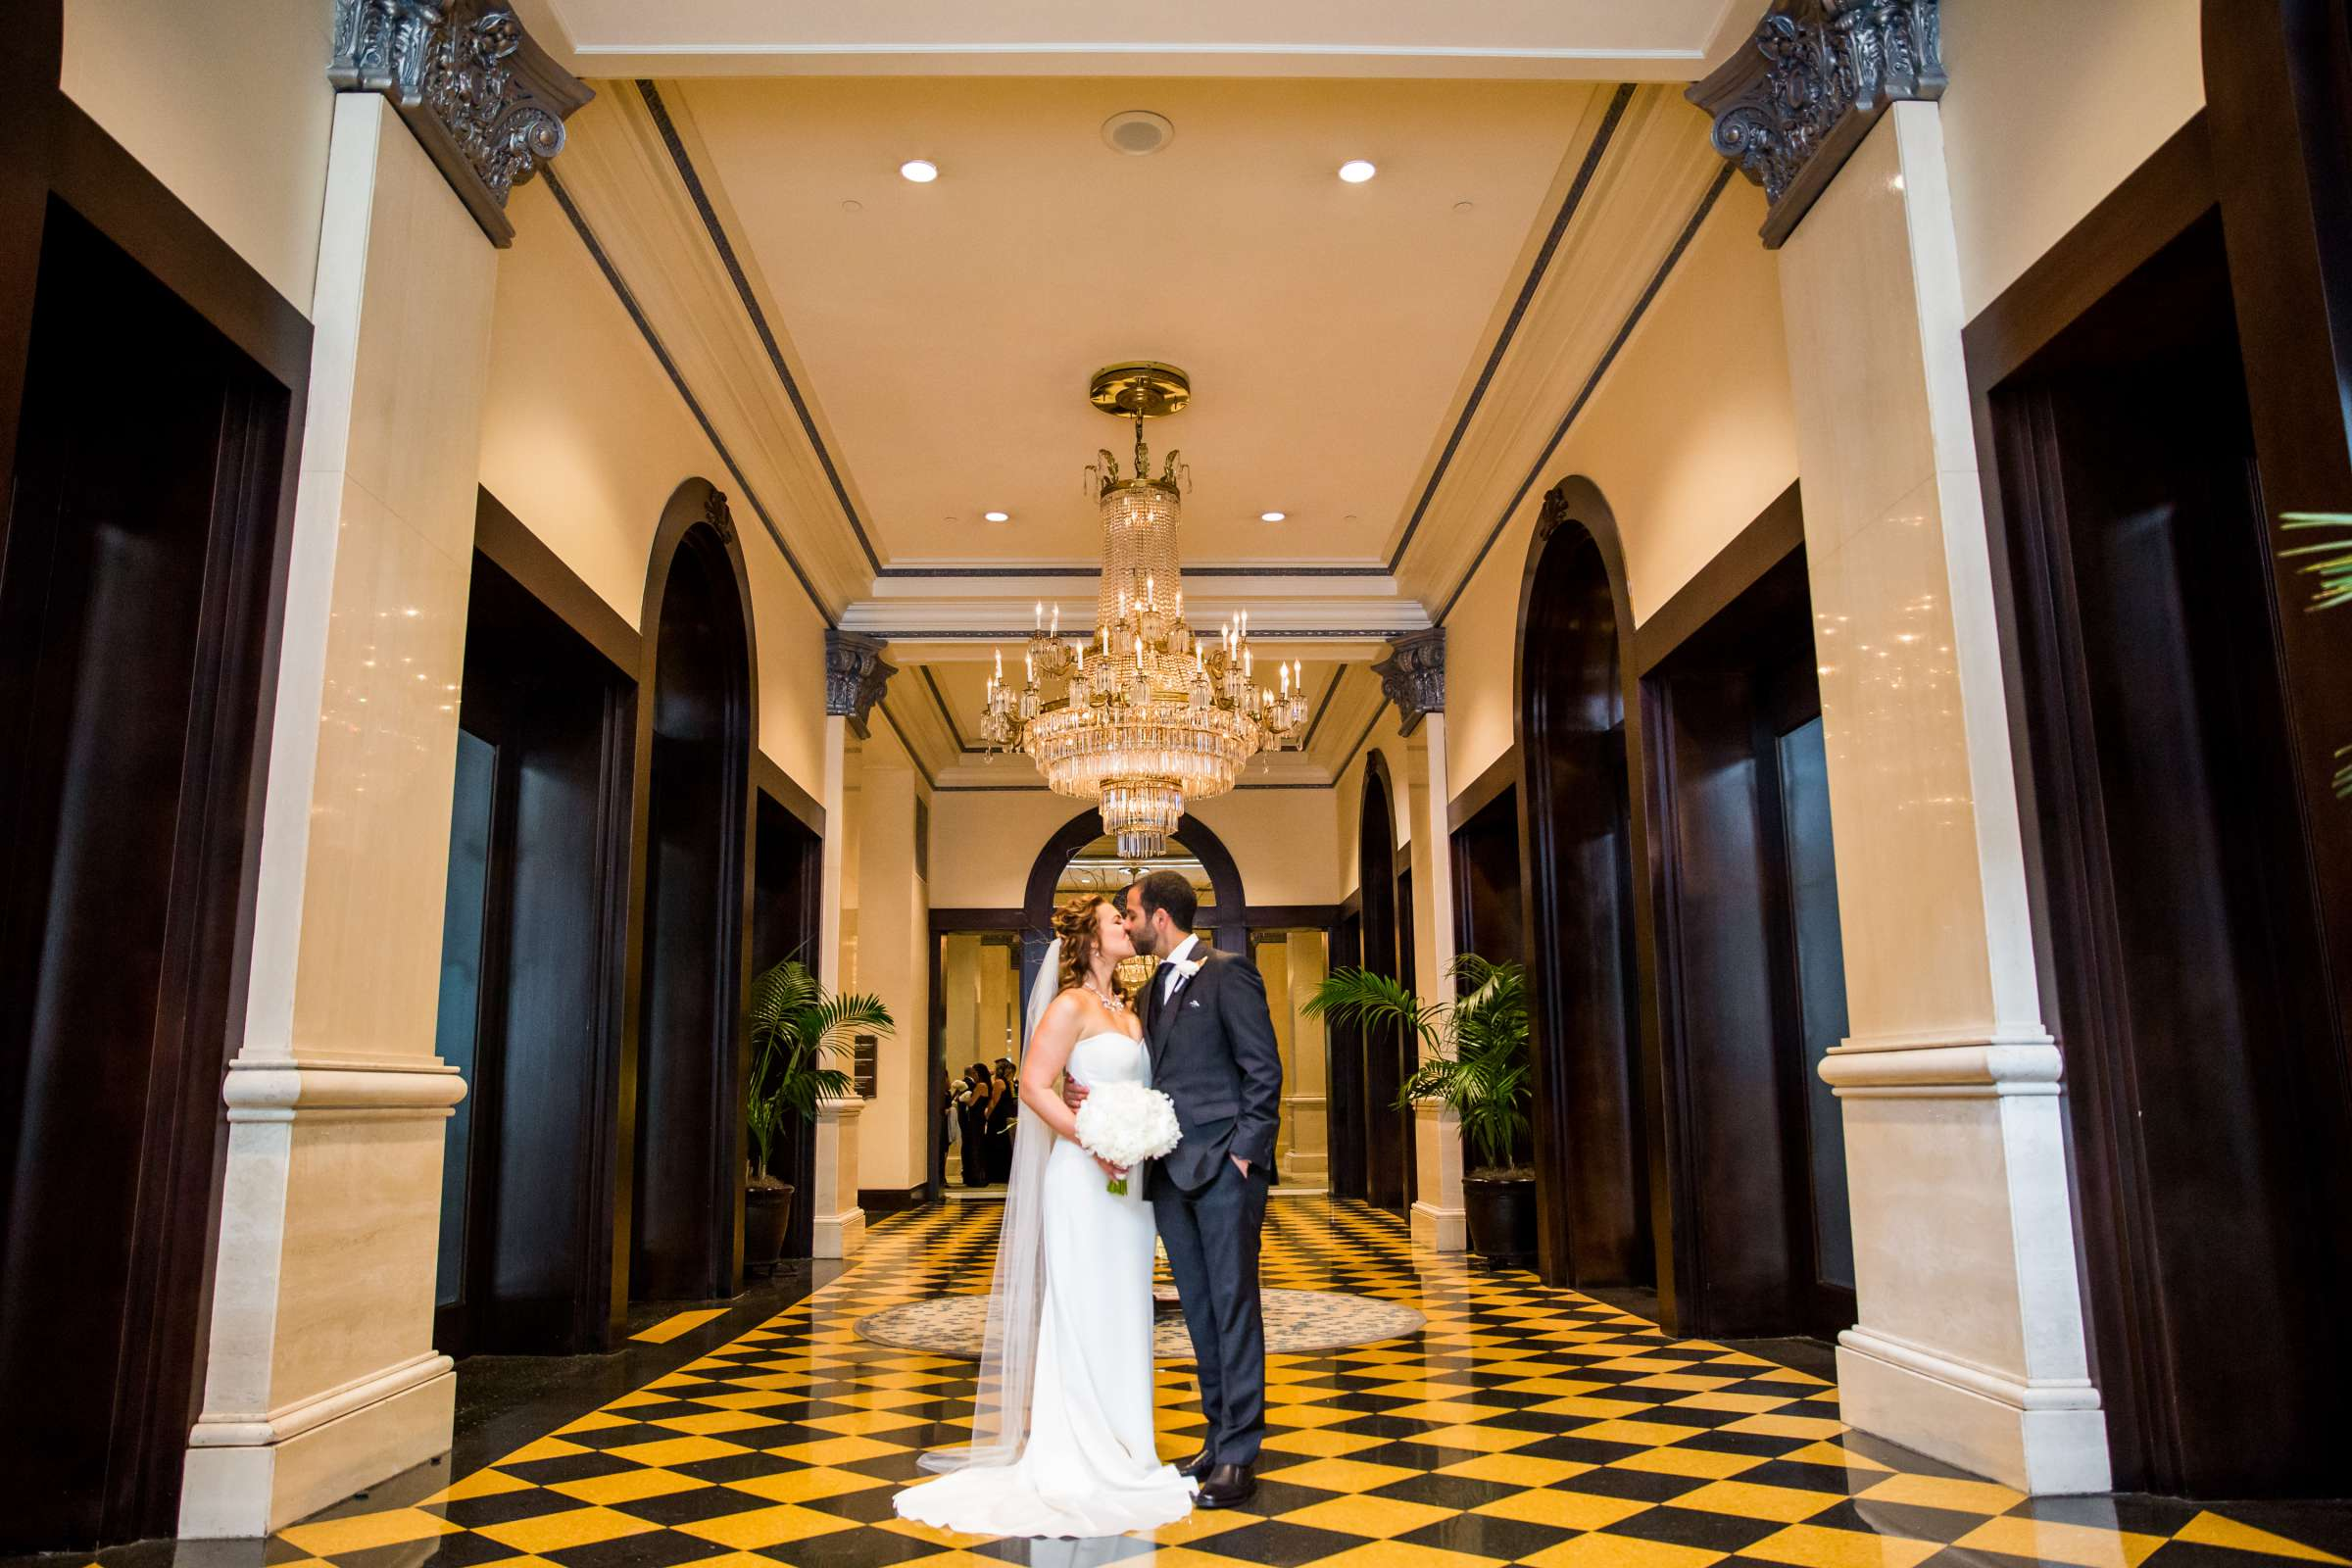 San Diego Museum of Art Wedding coordinated by First Comes Love Weddings & Events, Ruthie and Larry Wedding Photo #236789 by True Photography